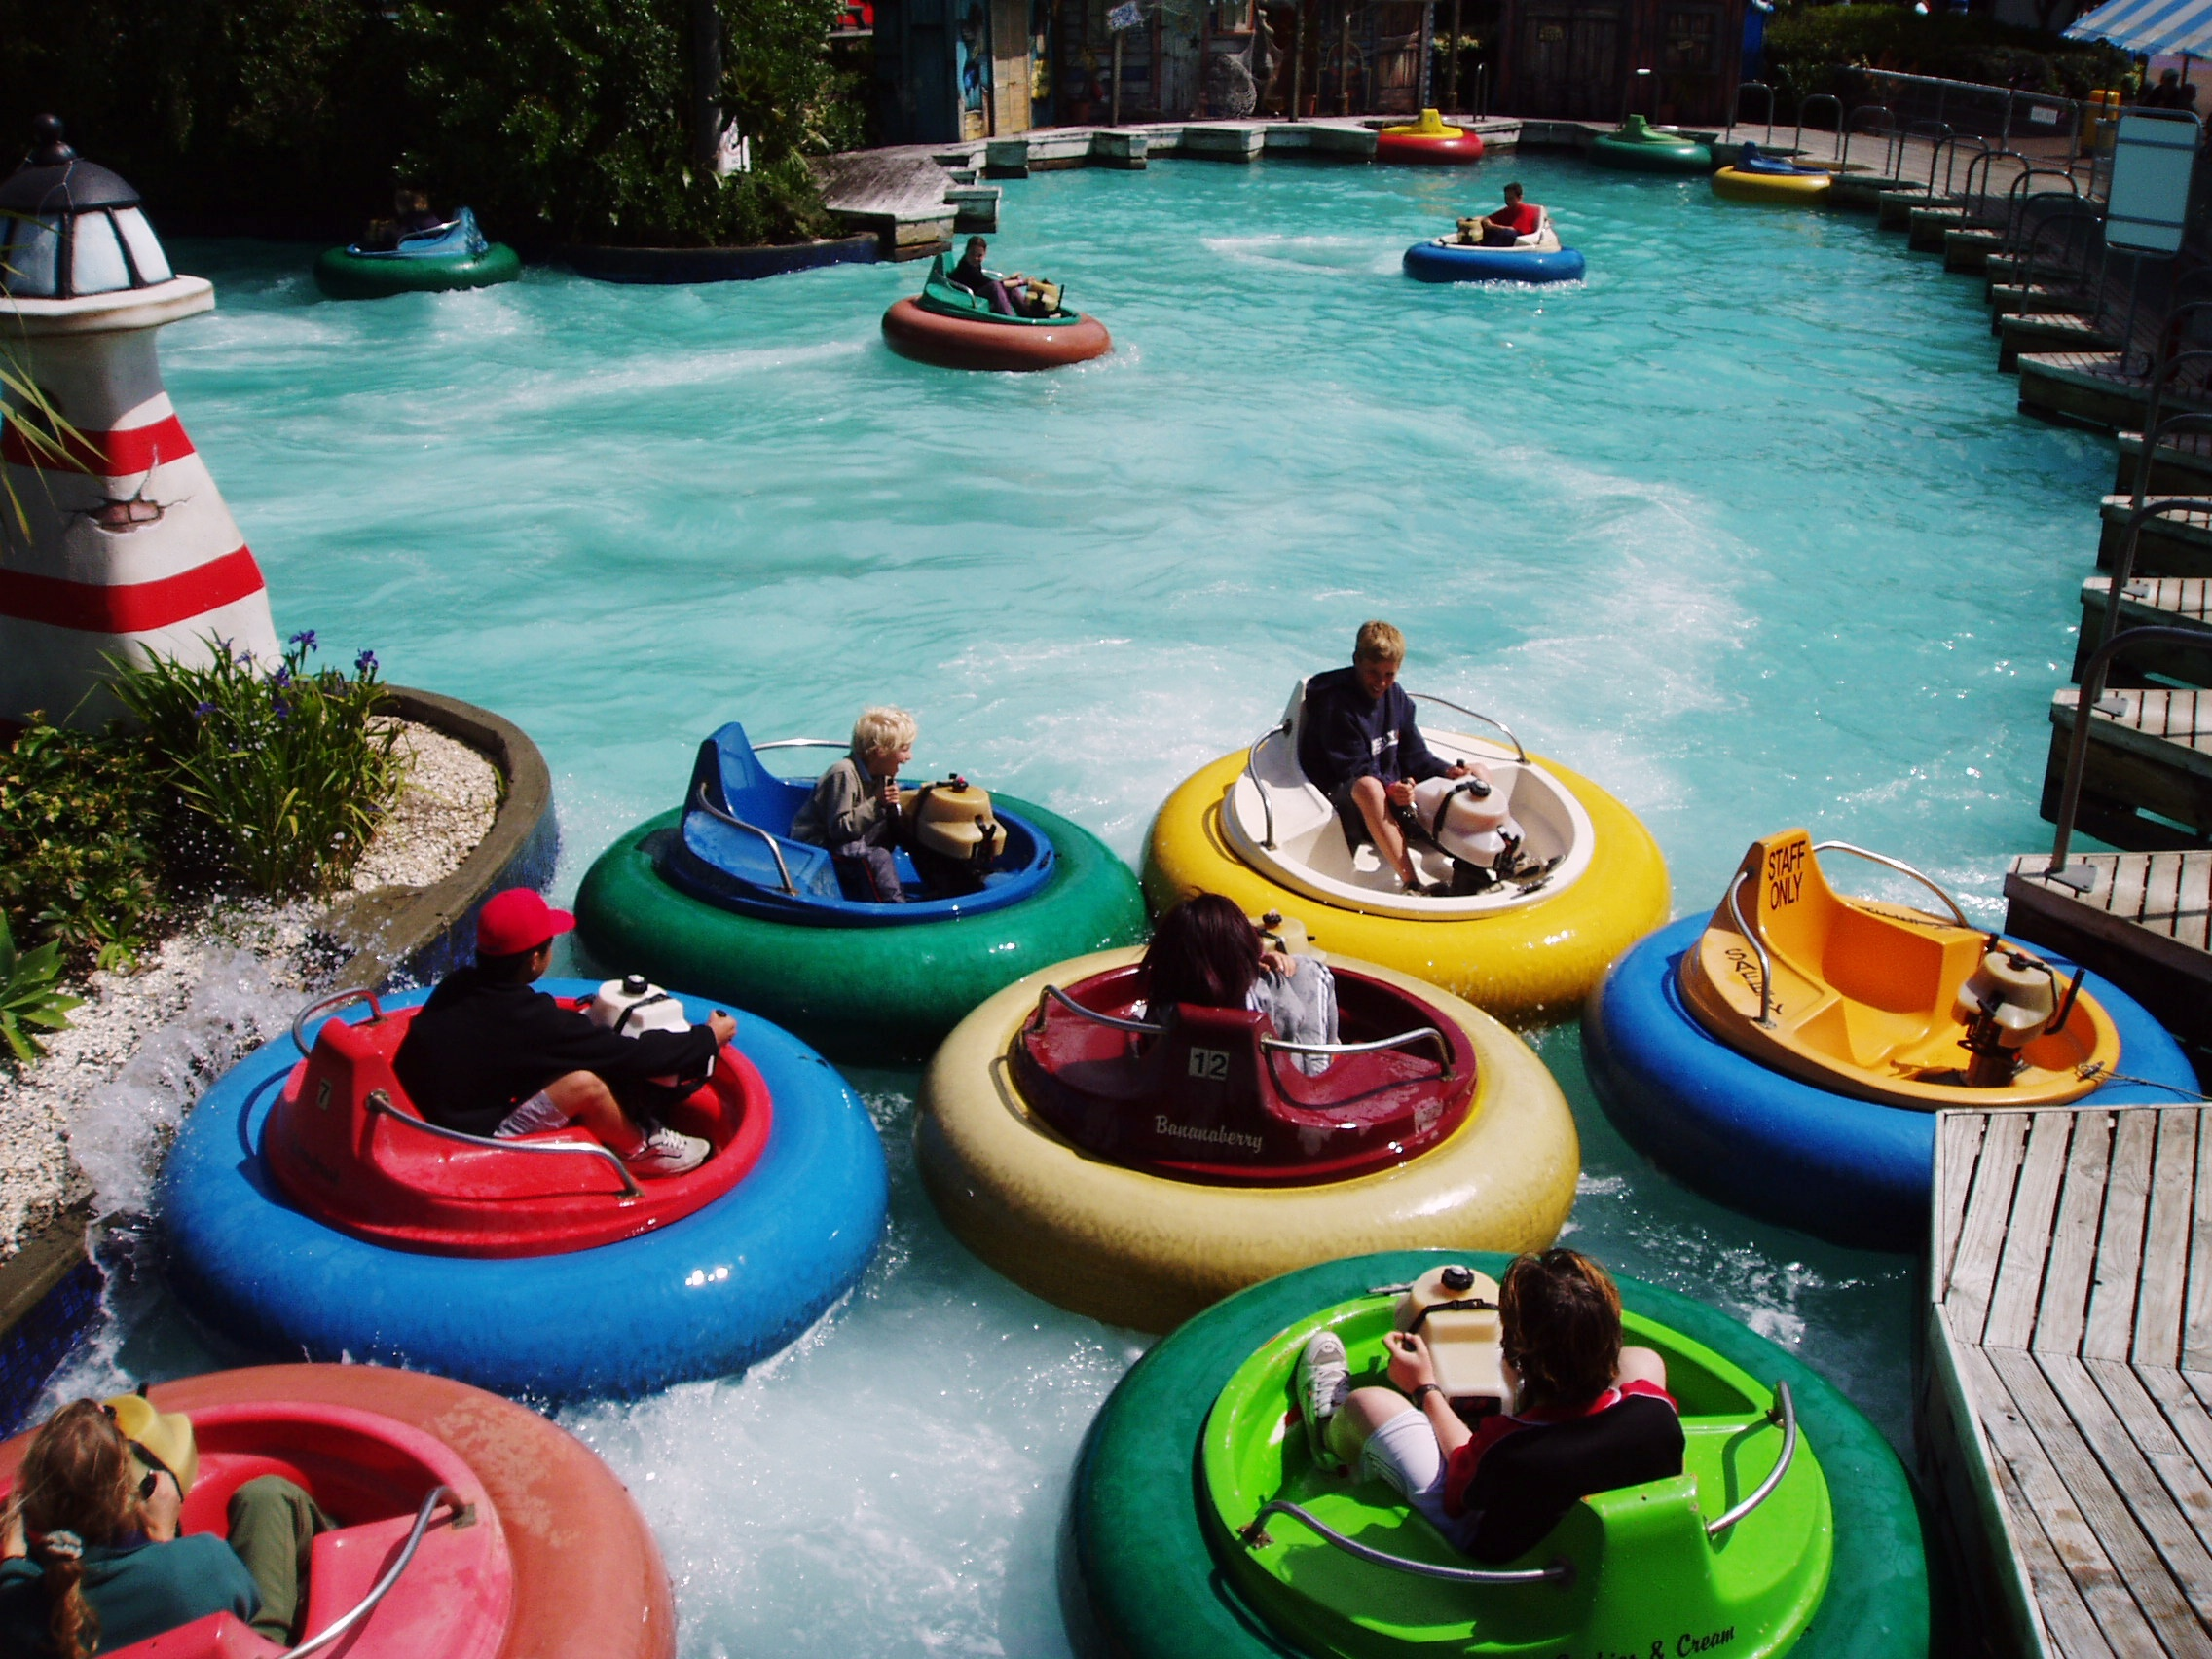 Bumper boats at Rainbow's End.